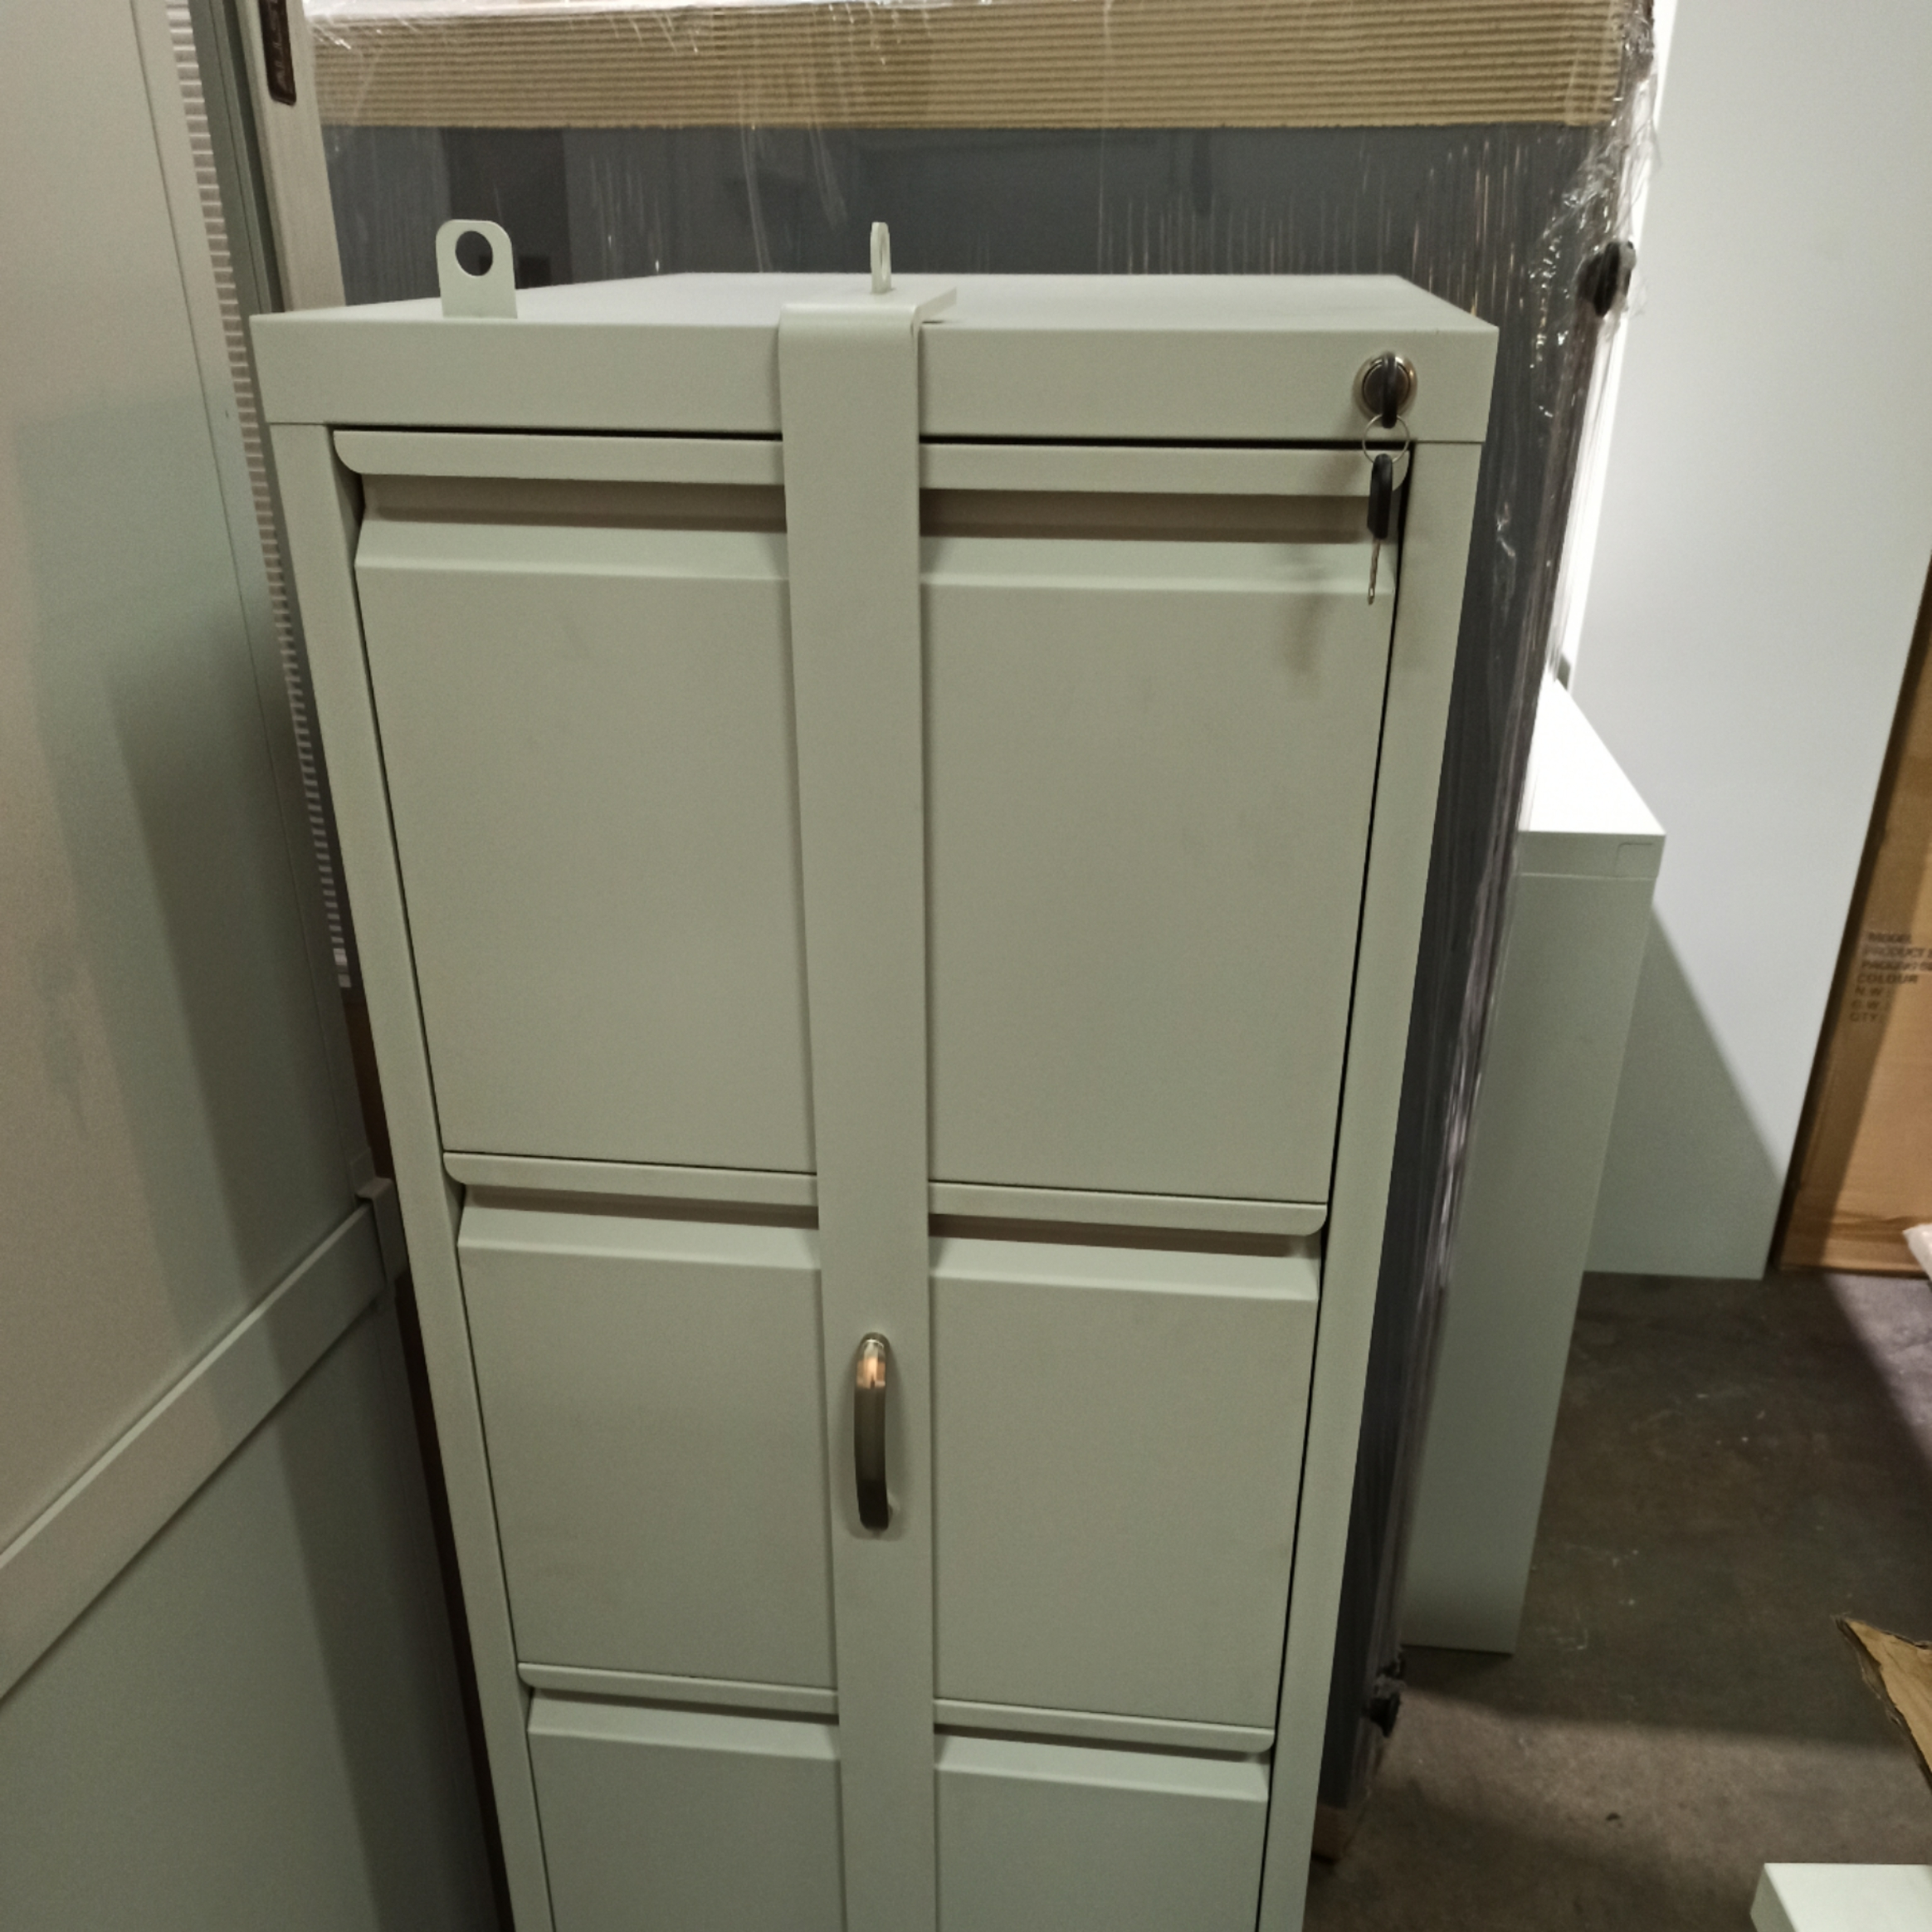 D-D4-B 4 Drawer Filing Cabinets with Security Bar (Anti Tilt Mechanism)